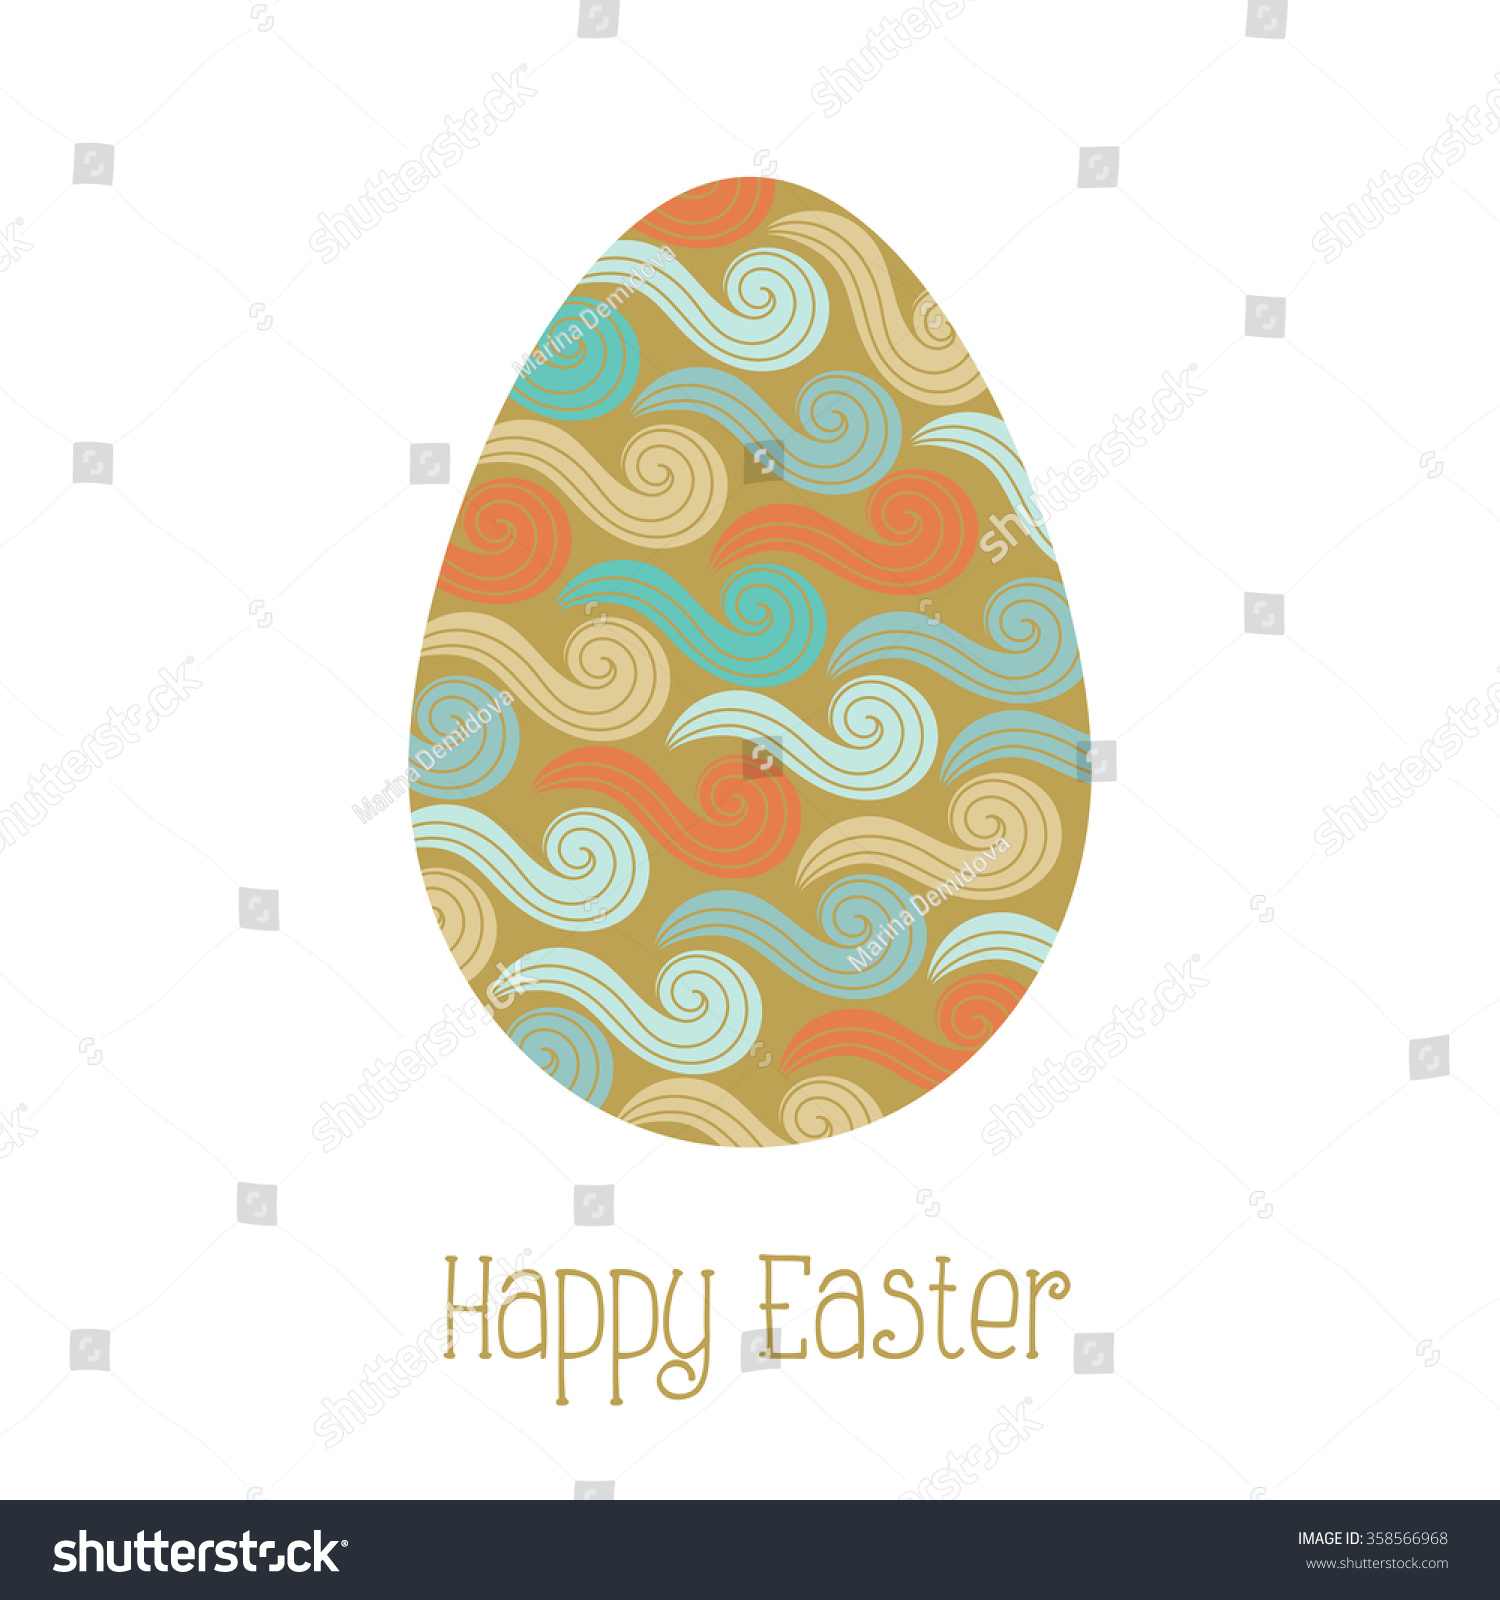 Greeting Card With Gold Easter Egg Abstract Wave Pattern Vector Illustration Isolated On White